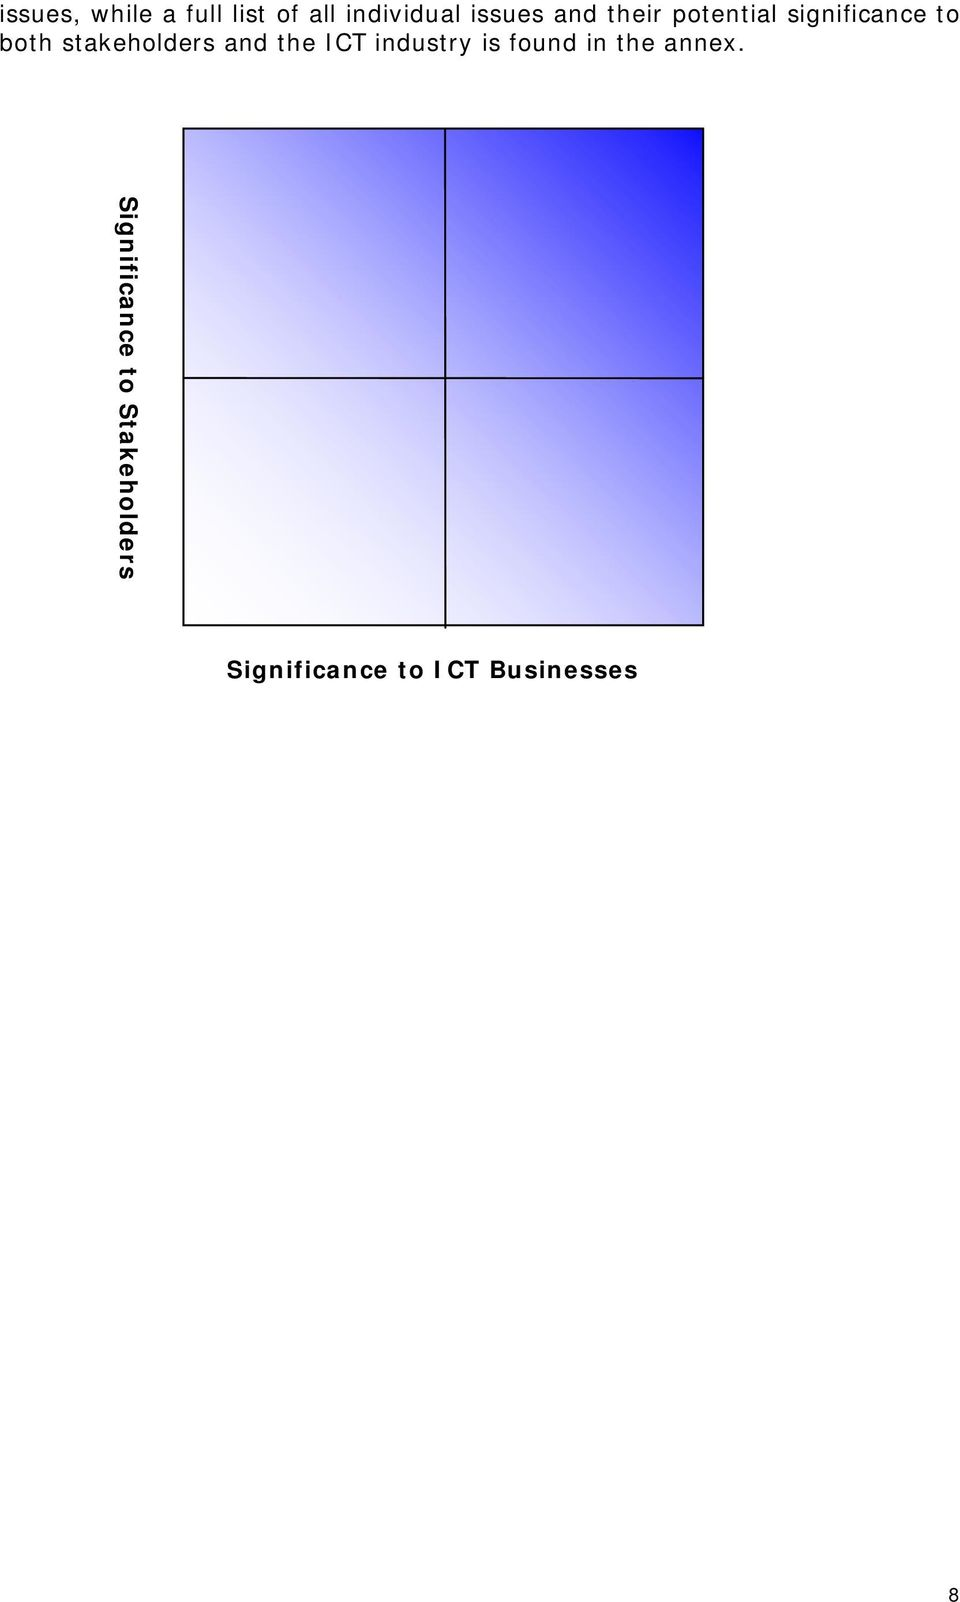 stakeholders and the ICT industry is found in the